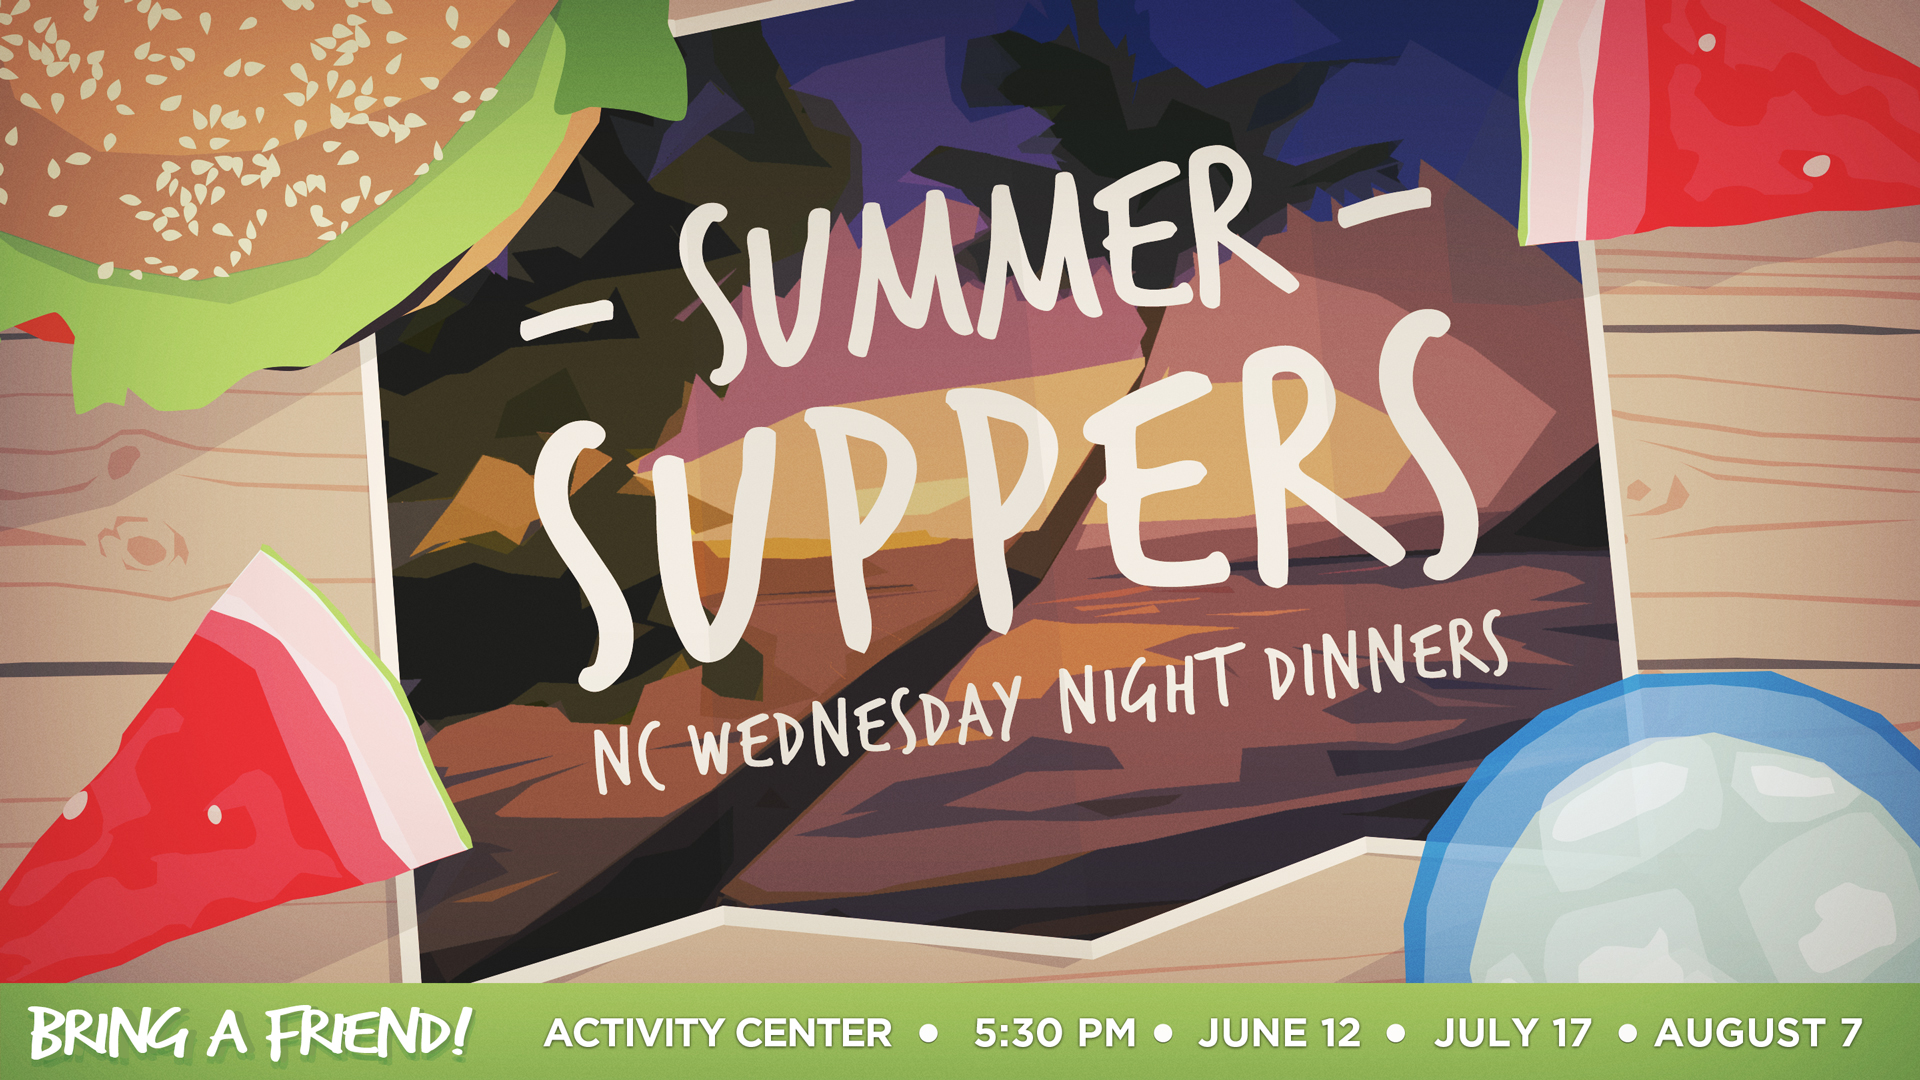 Summer-Suppers-Graphic.jpg